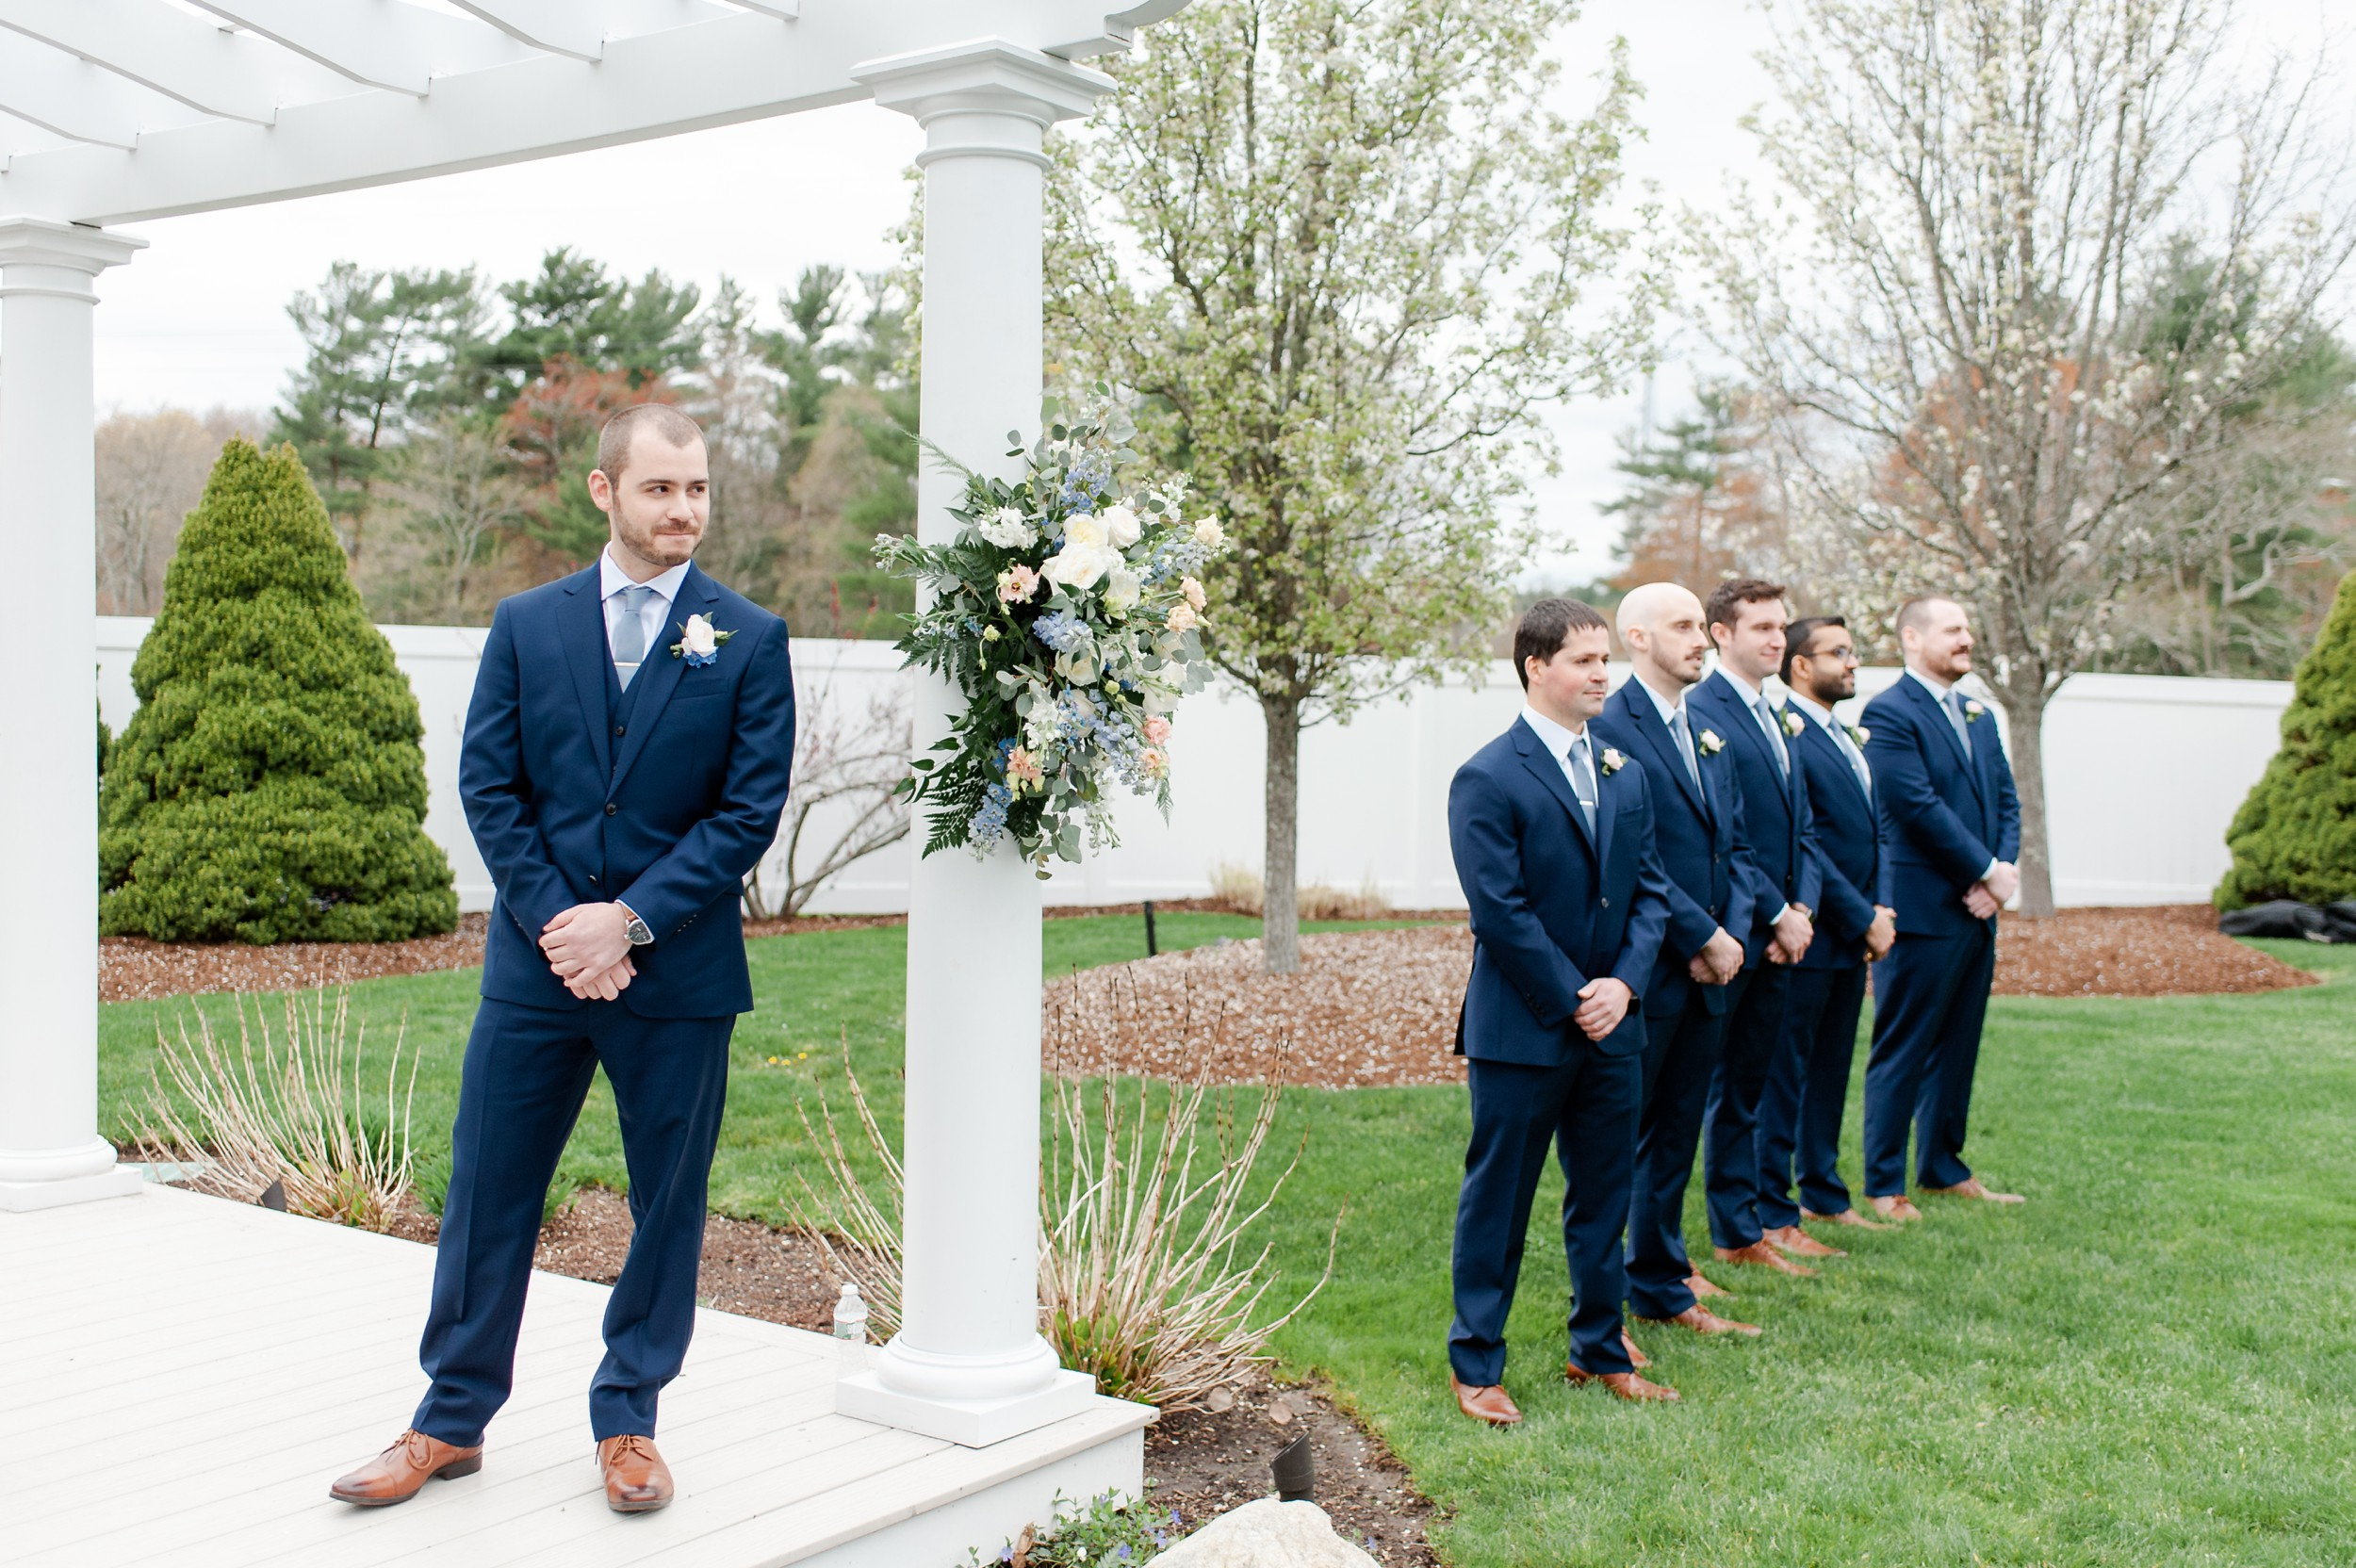 The Villa at Ridder Country Club Outdoor Wedding Ceremony in Spring with asymmetrical floral ceremony backdrop